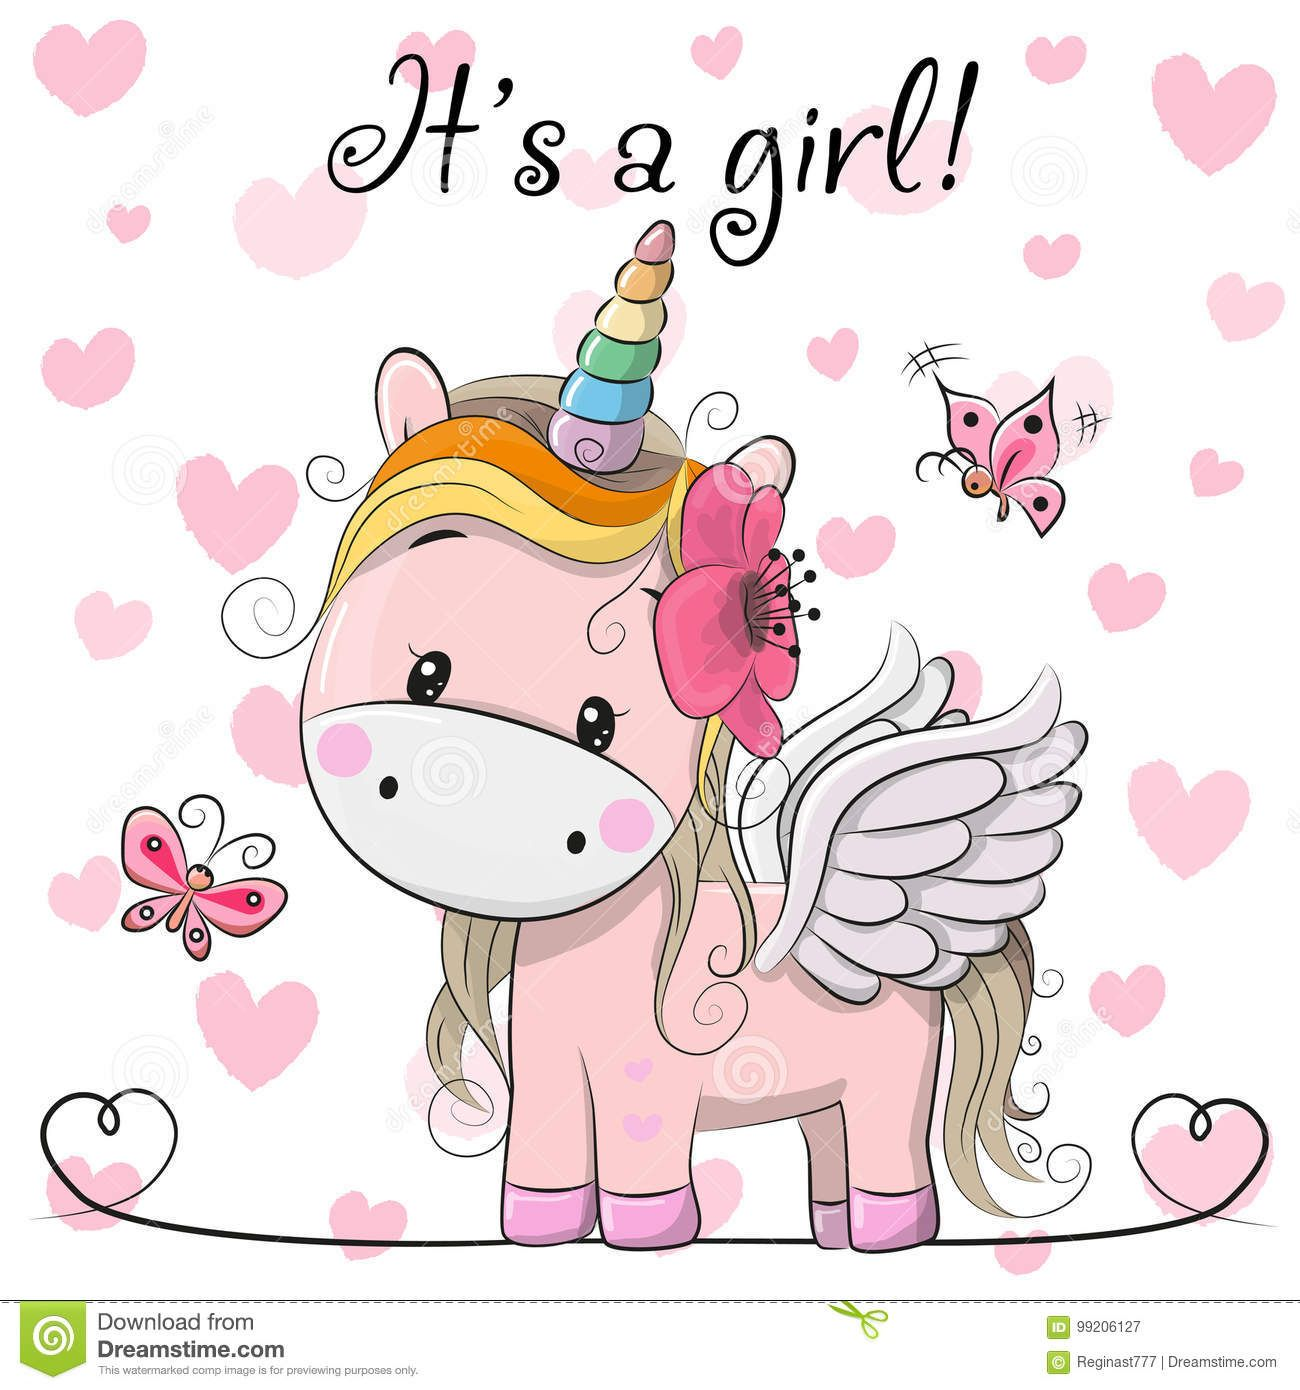 Baby shower greeting card with unicorn girl download from over baby shower greeting card with unicorn girl download from over 68 million high quality stock kristyandbryce Image collections